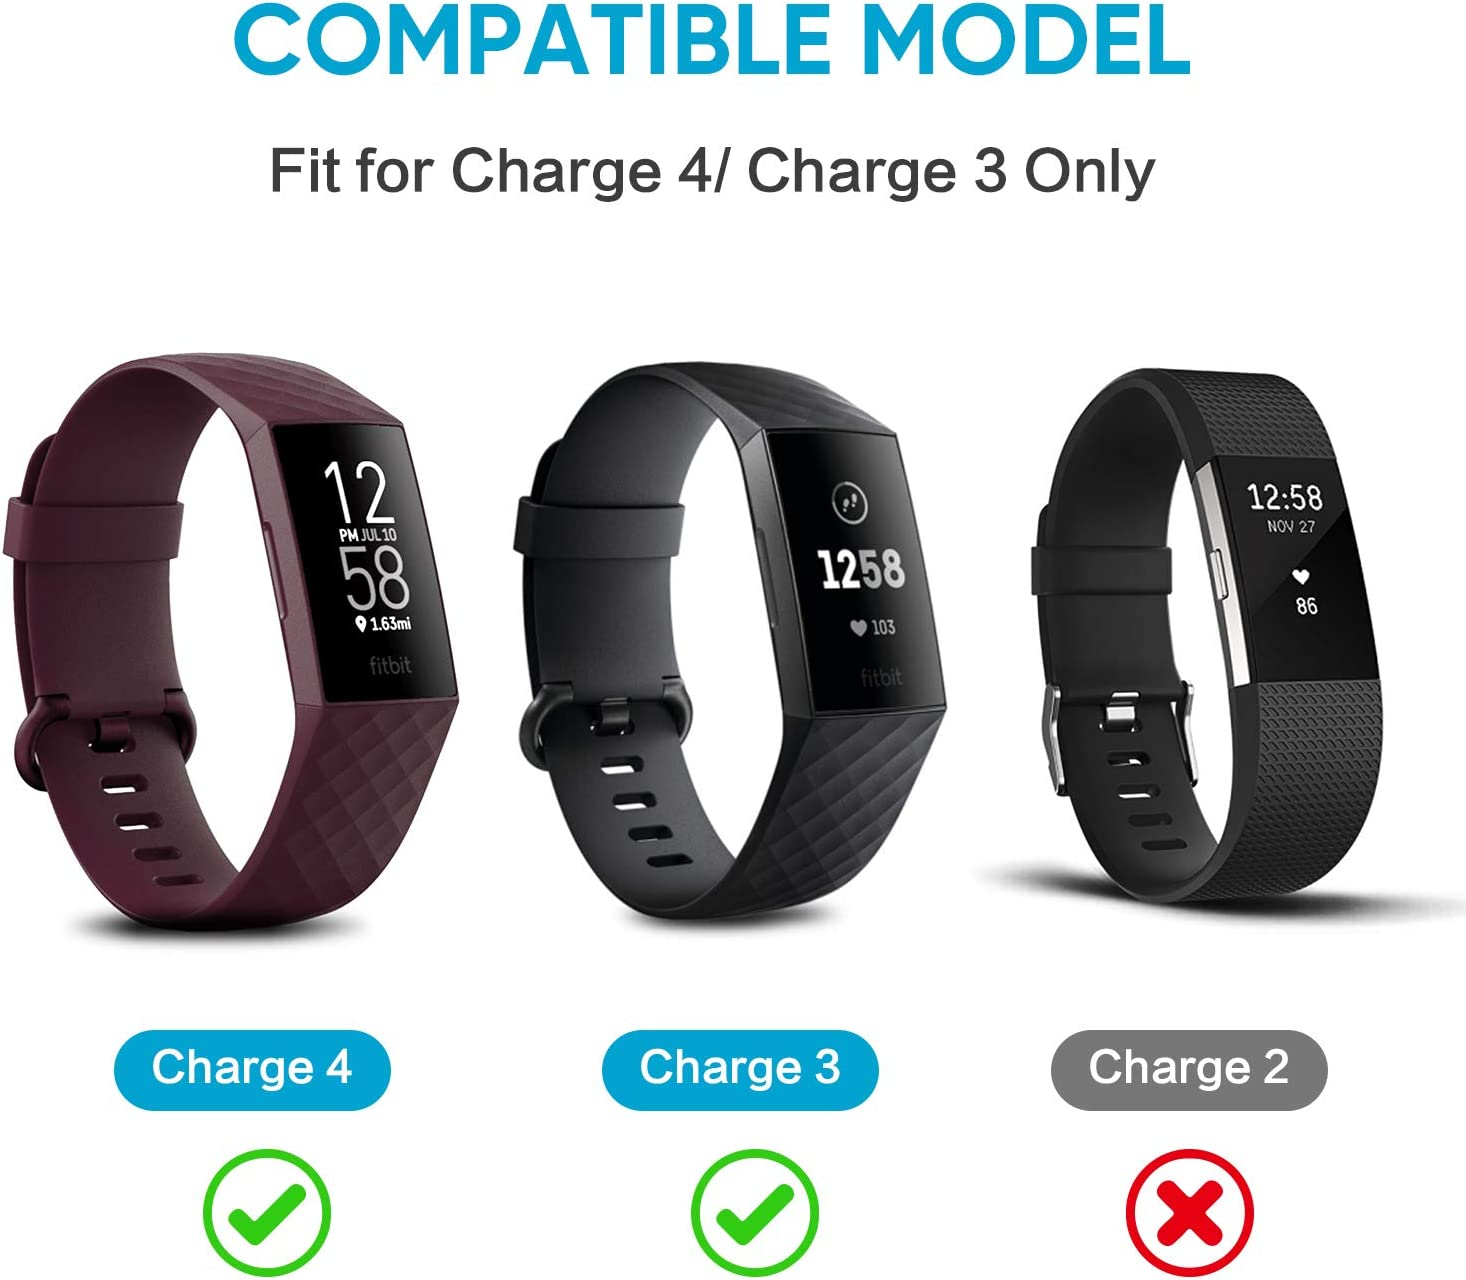 Fymint 2-Pack Charger Cable Compatible with Fitbit Charge 4 3.3Ft Replacement U